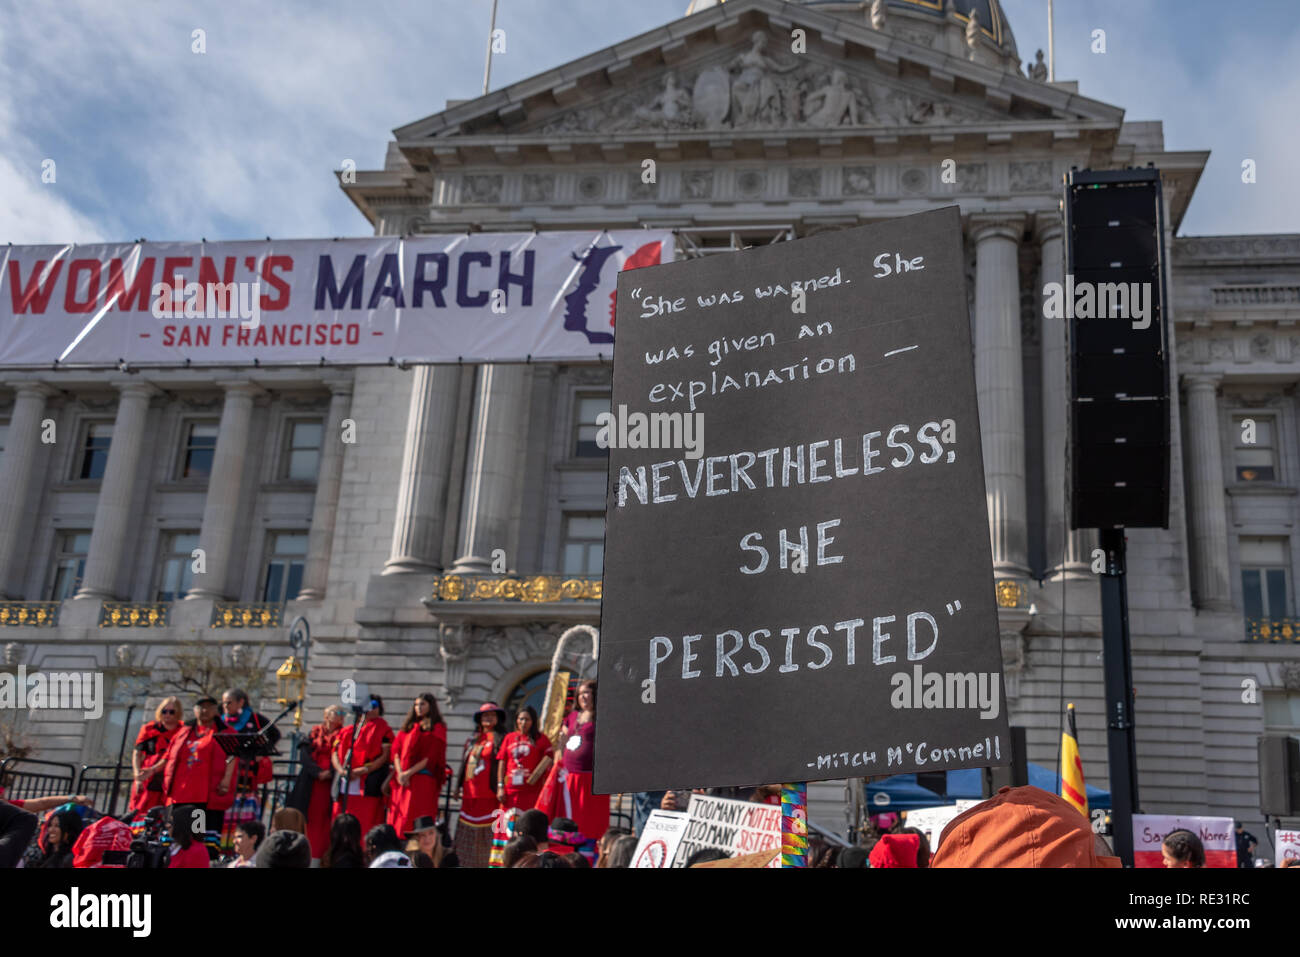 San Francisco, USA. 19th January, 2019. The Women's March San Francisco begins with a rally at Civic Center Plaza in front of City Hall. A sign held high above the crowd bears Mitch McConnell's quote from his attempt to silence Elizabeth Warren: 'She was warned. She was given an explanation - nevertheless, she persisted.' A sign above the crowd  Credit: Shelly Rivoli/Alamy Live News - Stock Image